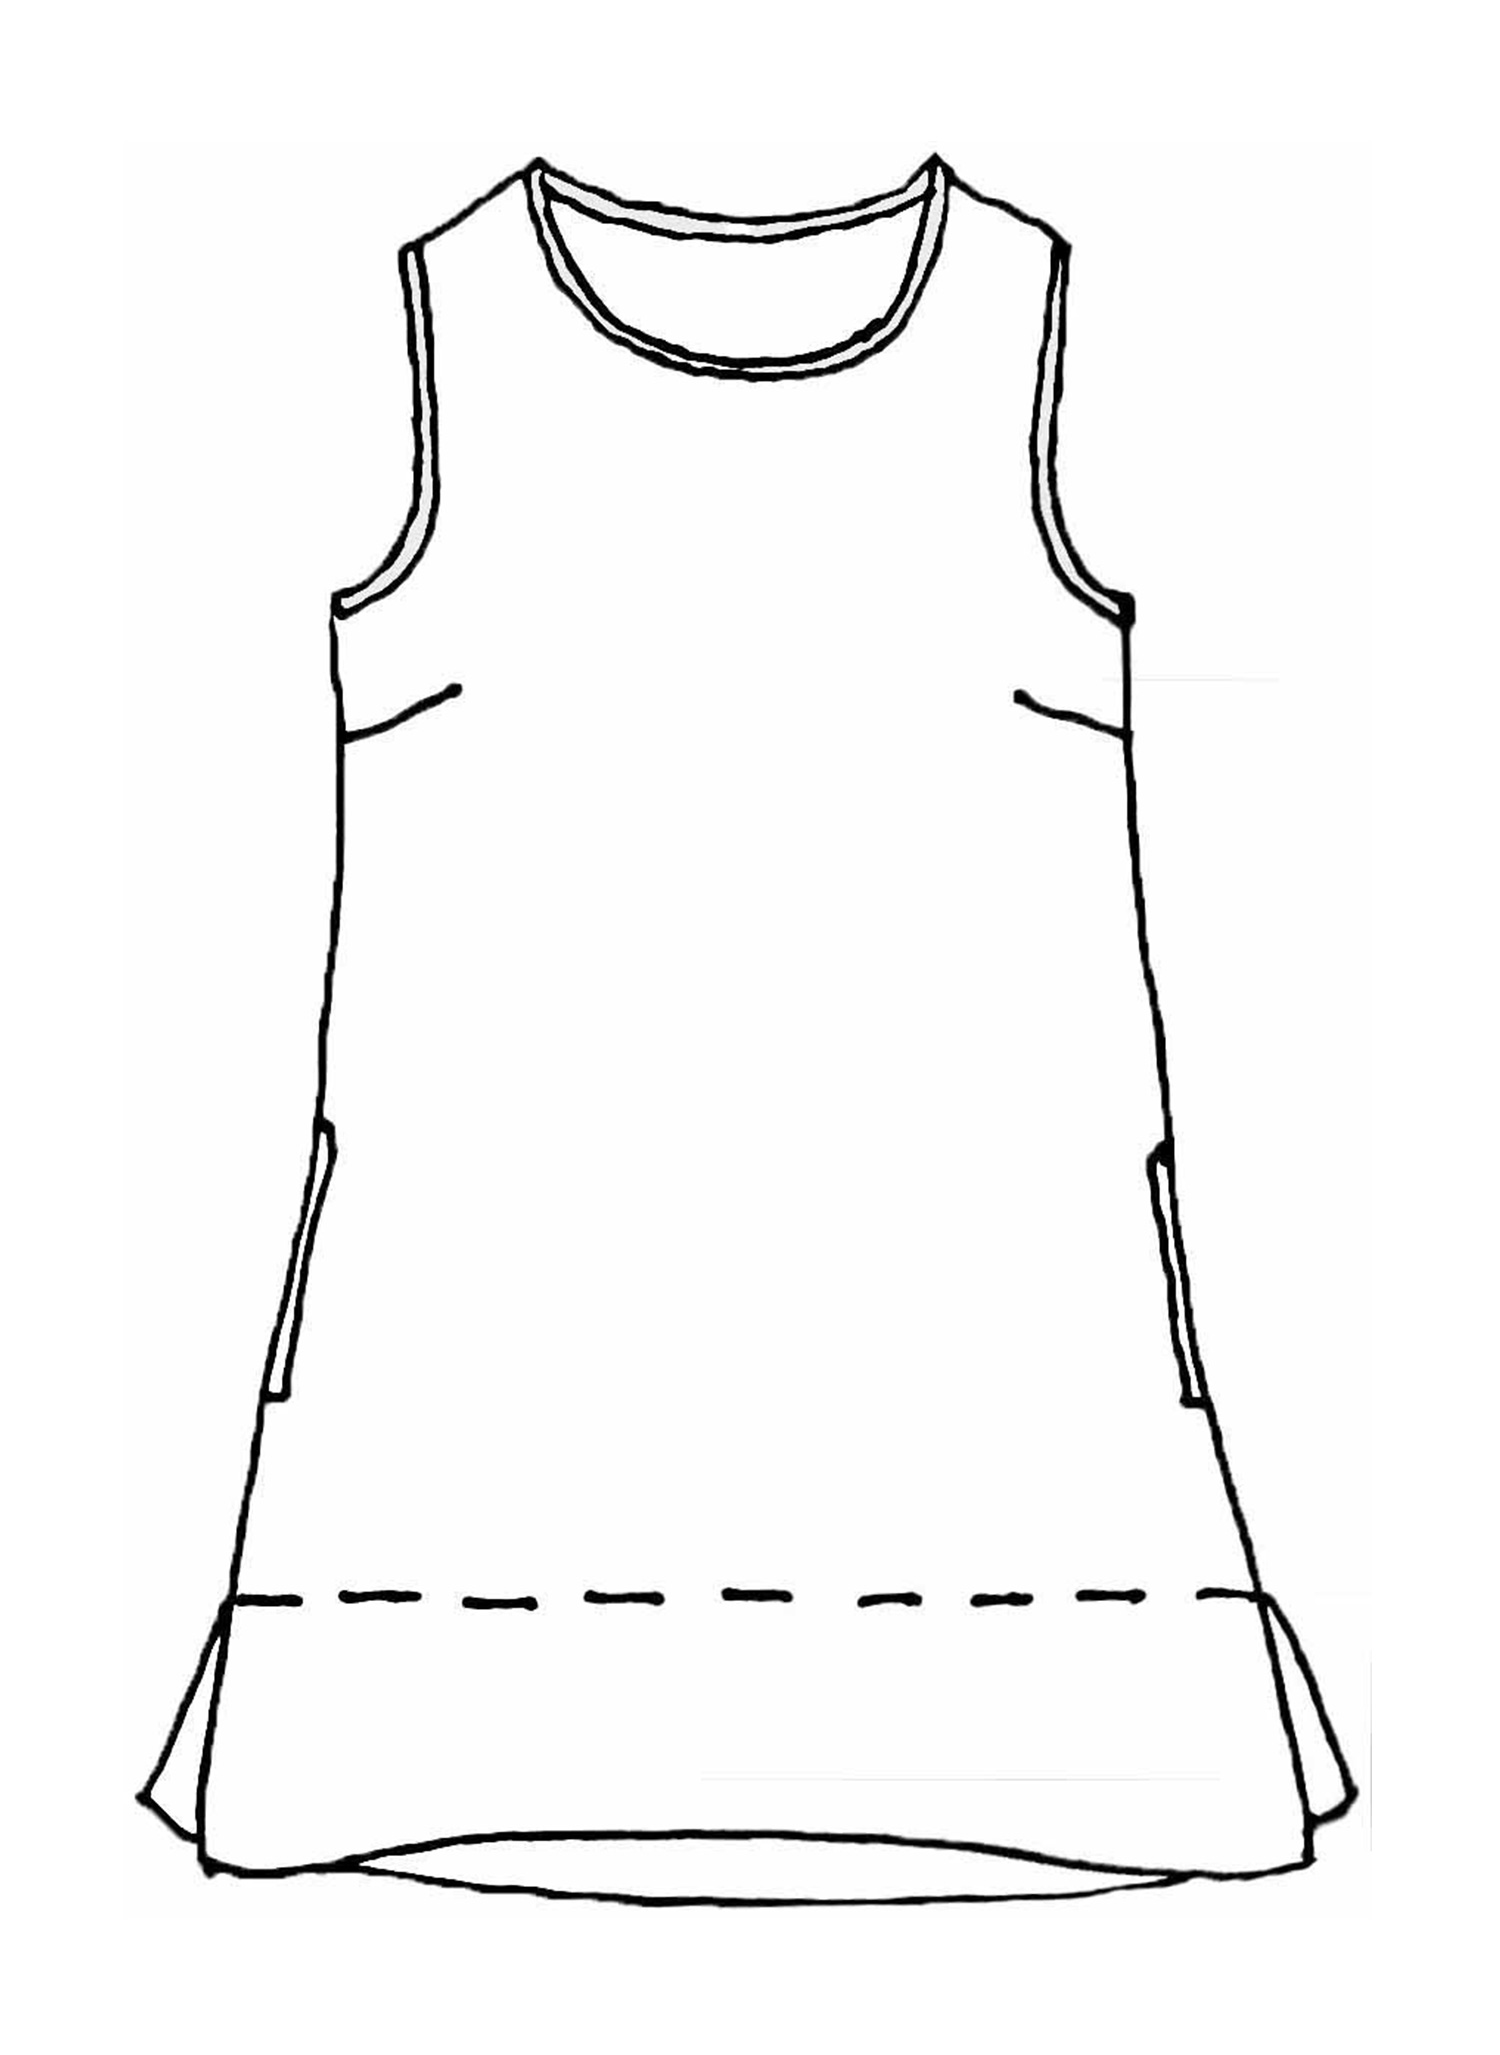 Roadie Tunic sketch image